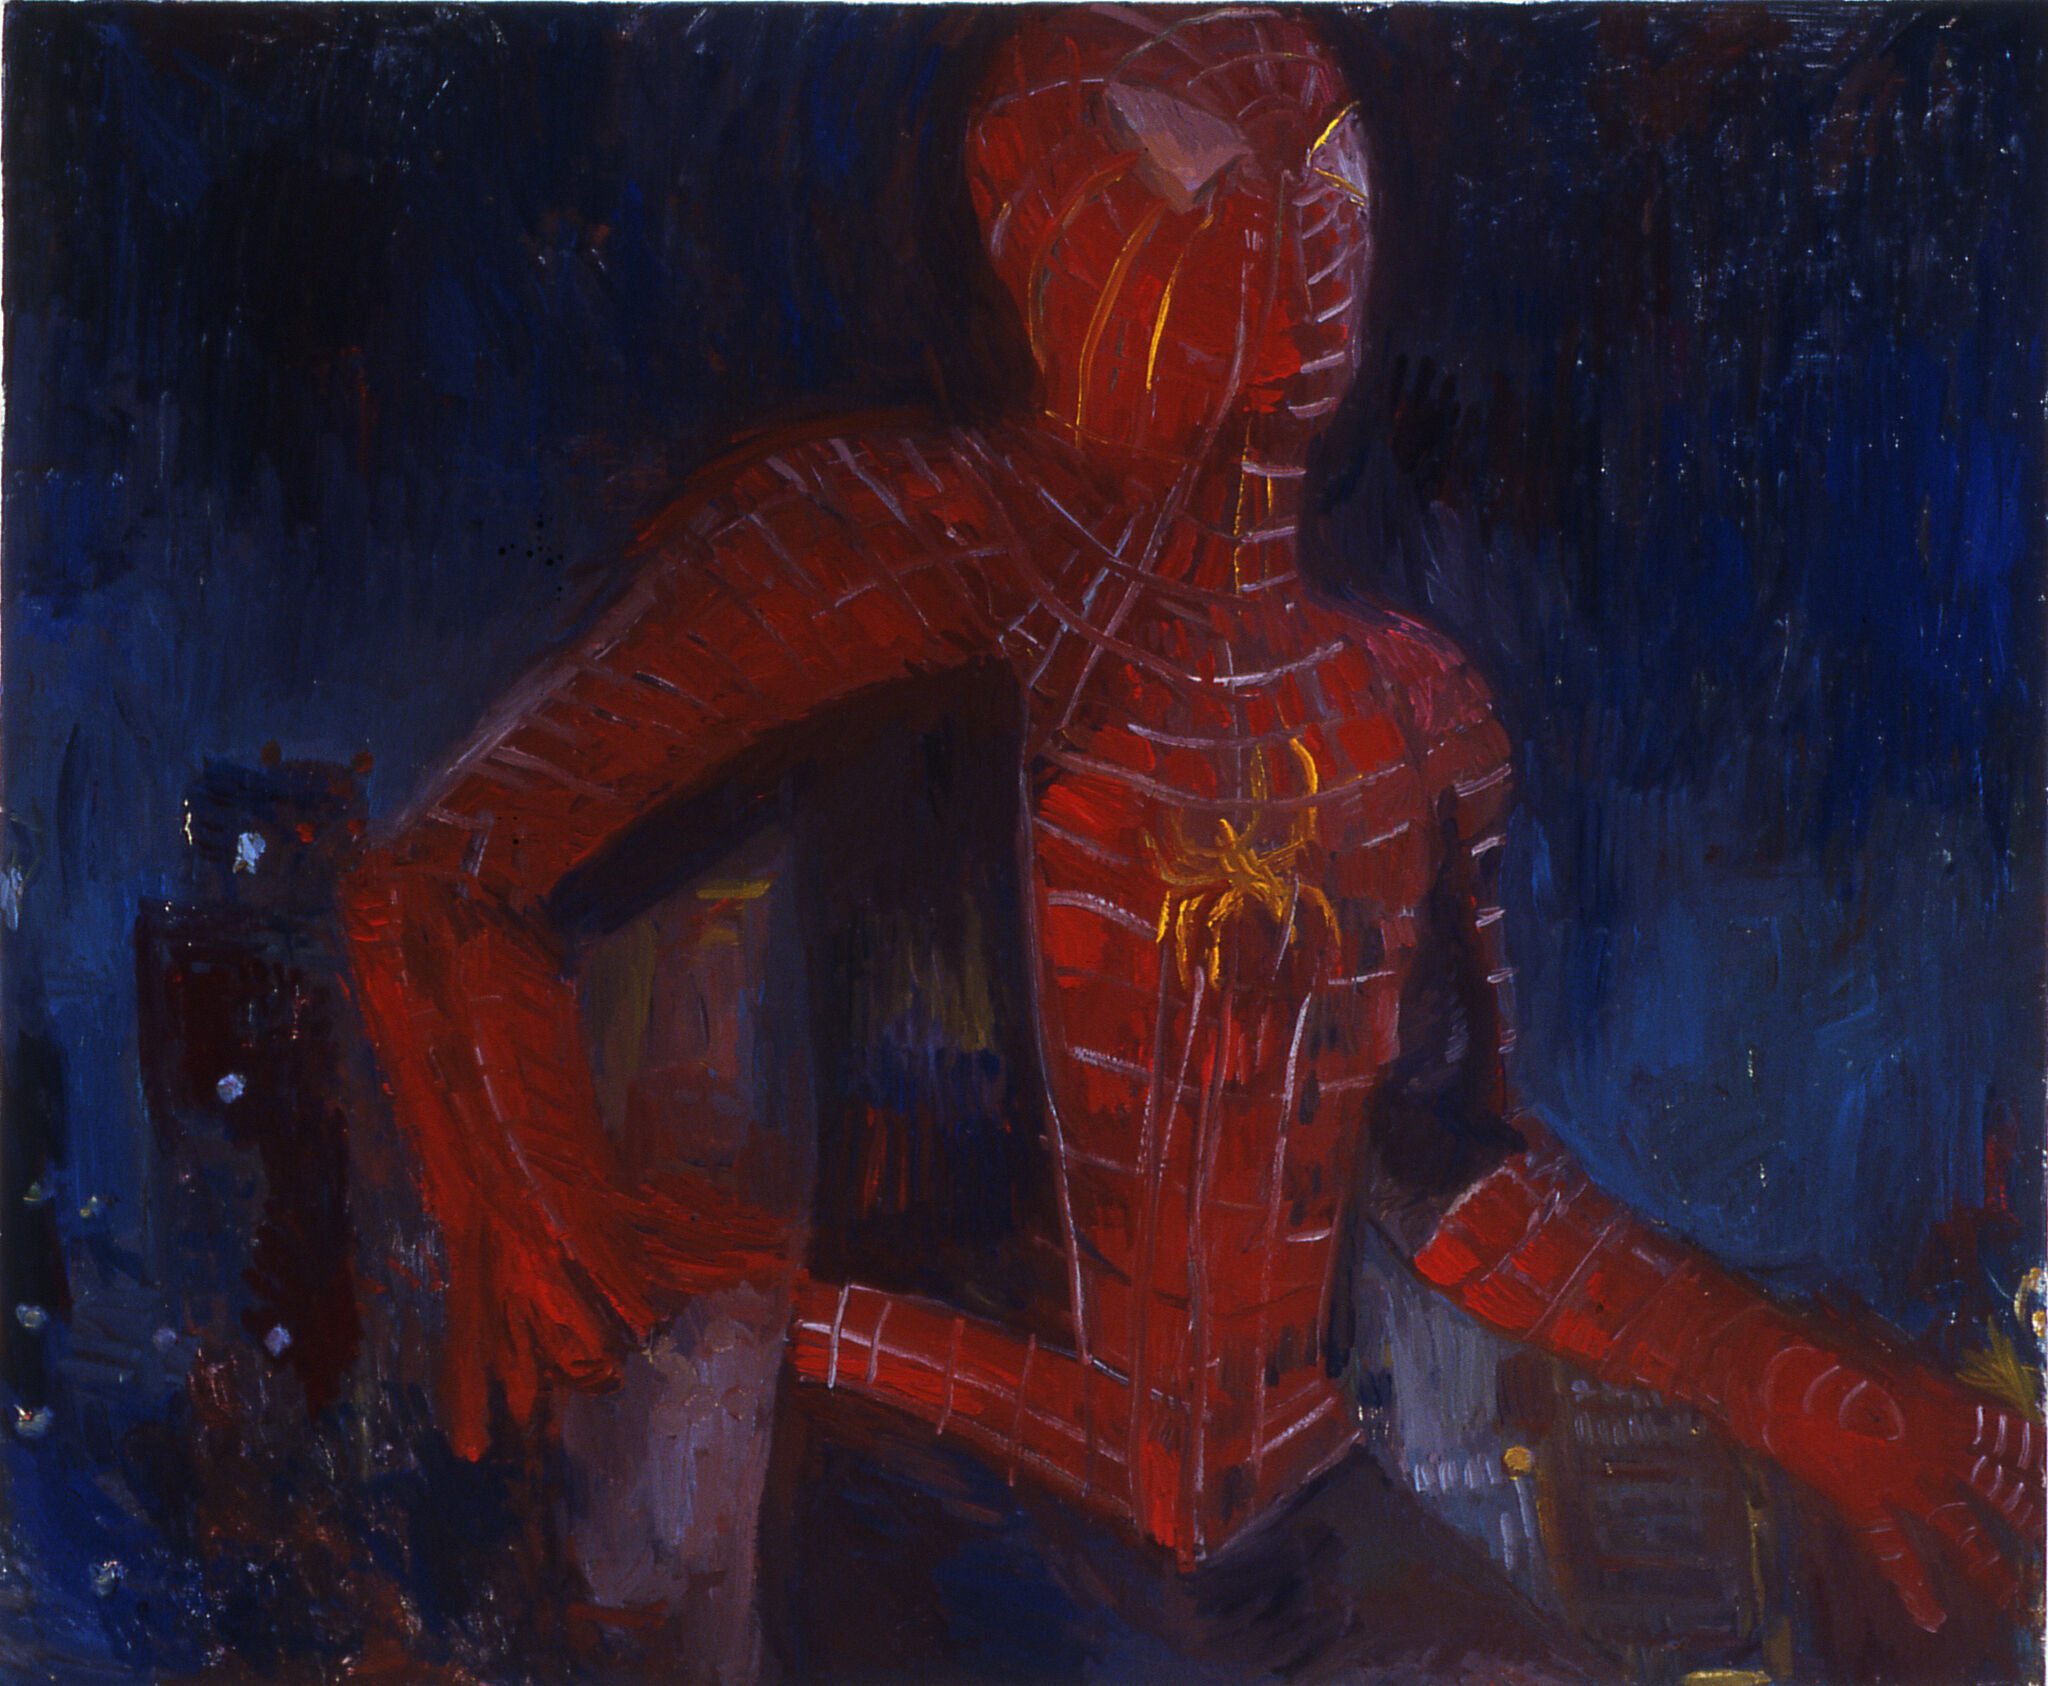 A painting of Spiderman.